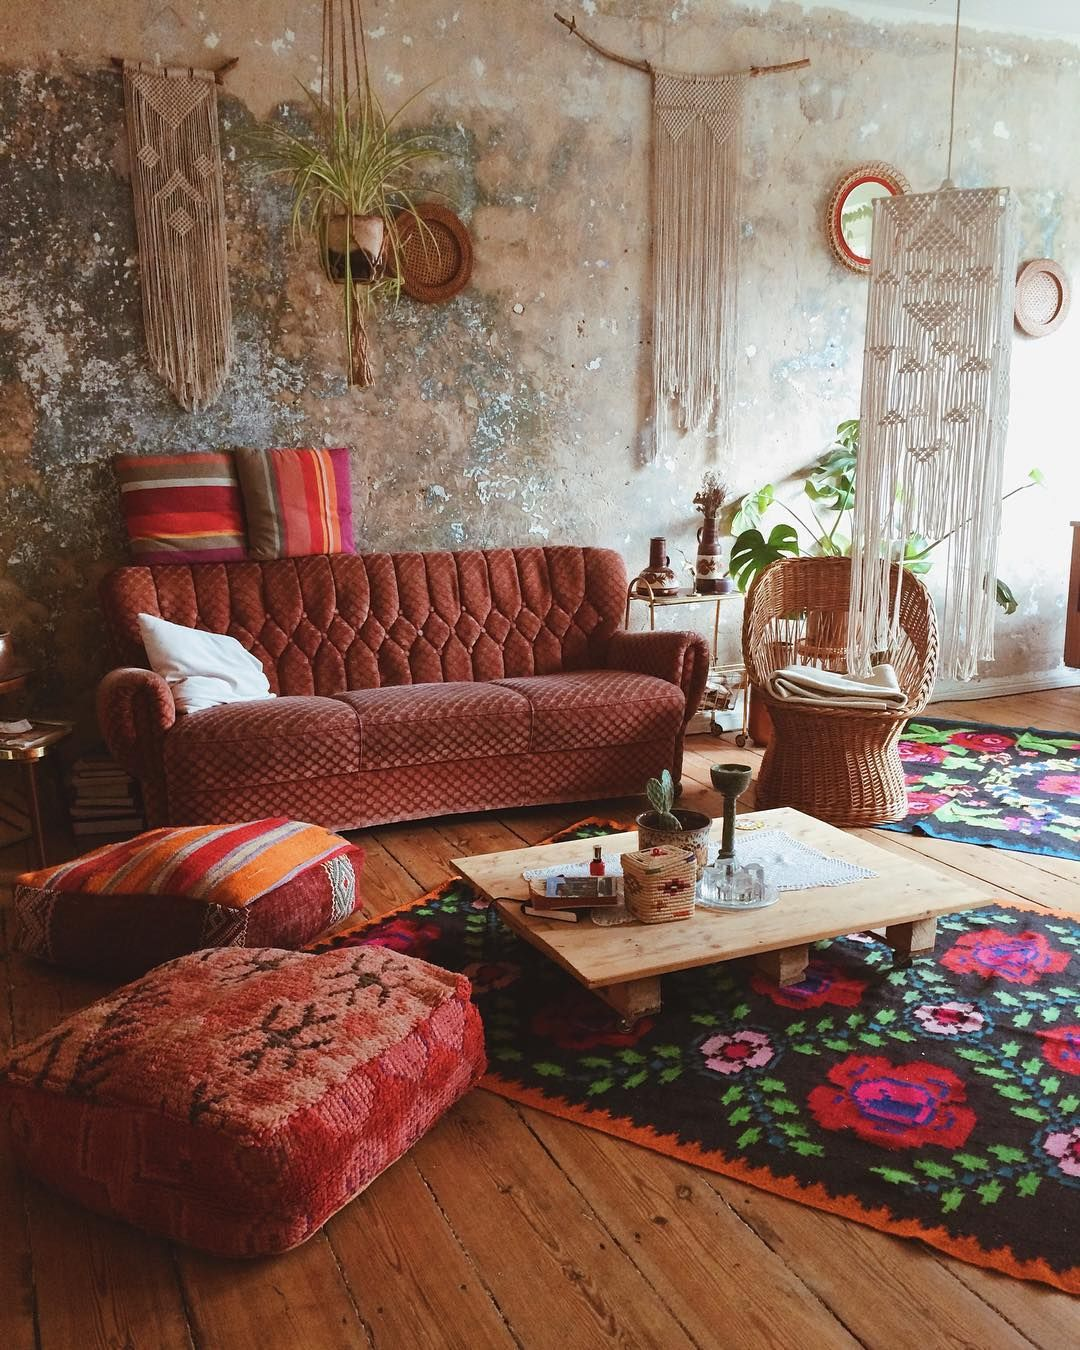 Boho Library Wall Living Room: Ratty Old Wall Lookin Real Nice Here.